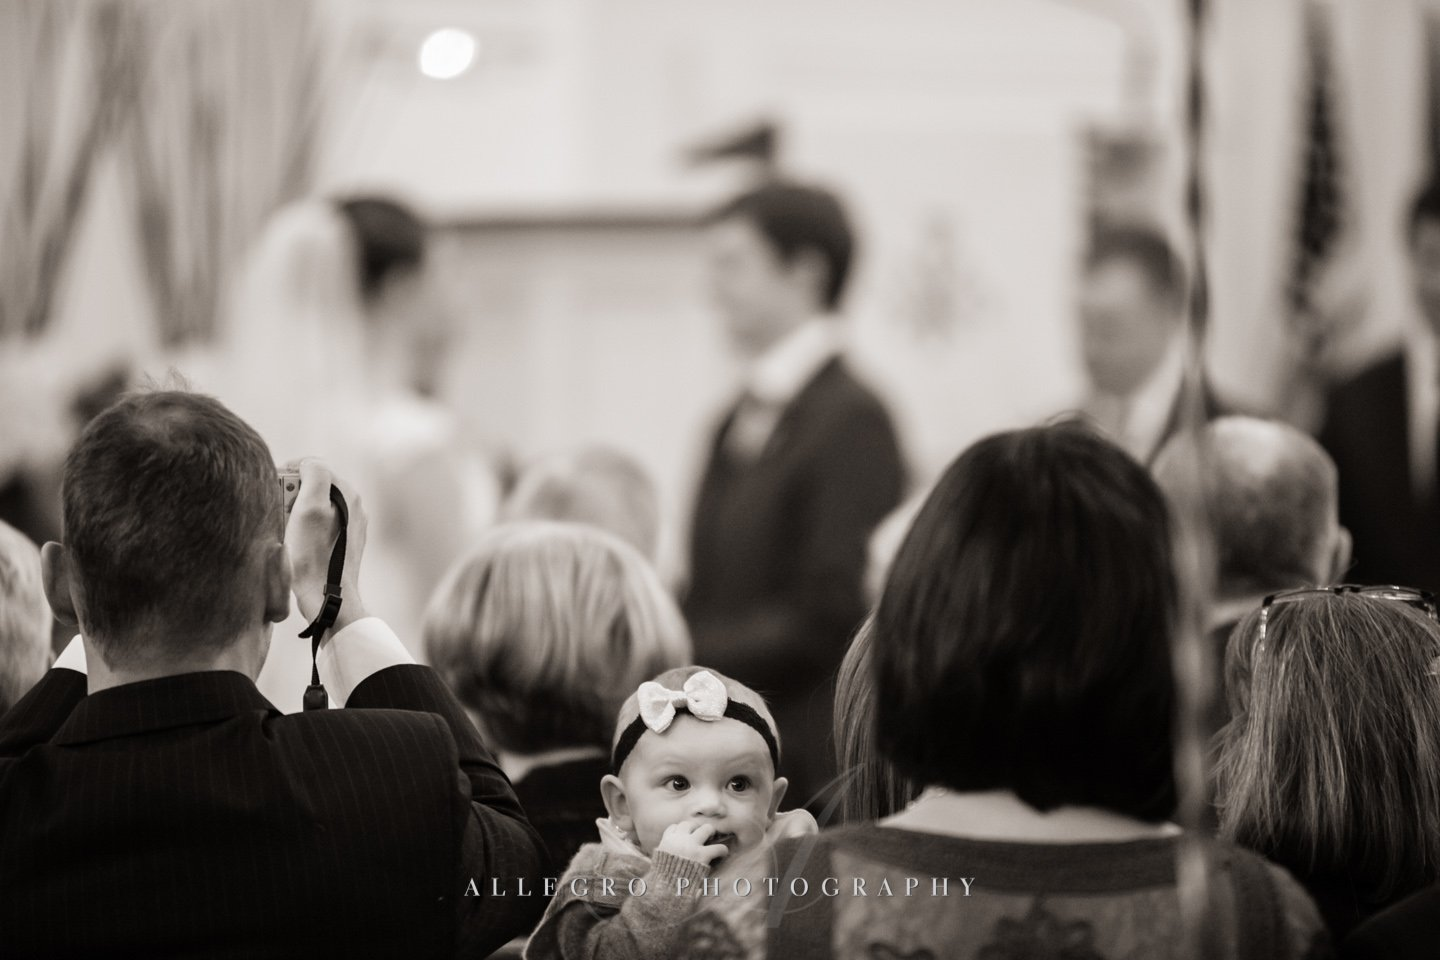 baby at wedding- photo by allegro photography